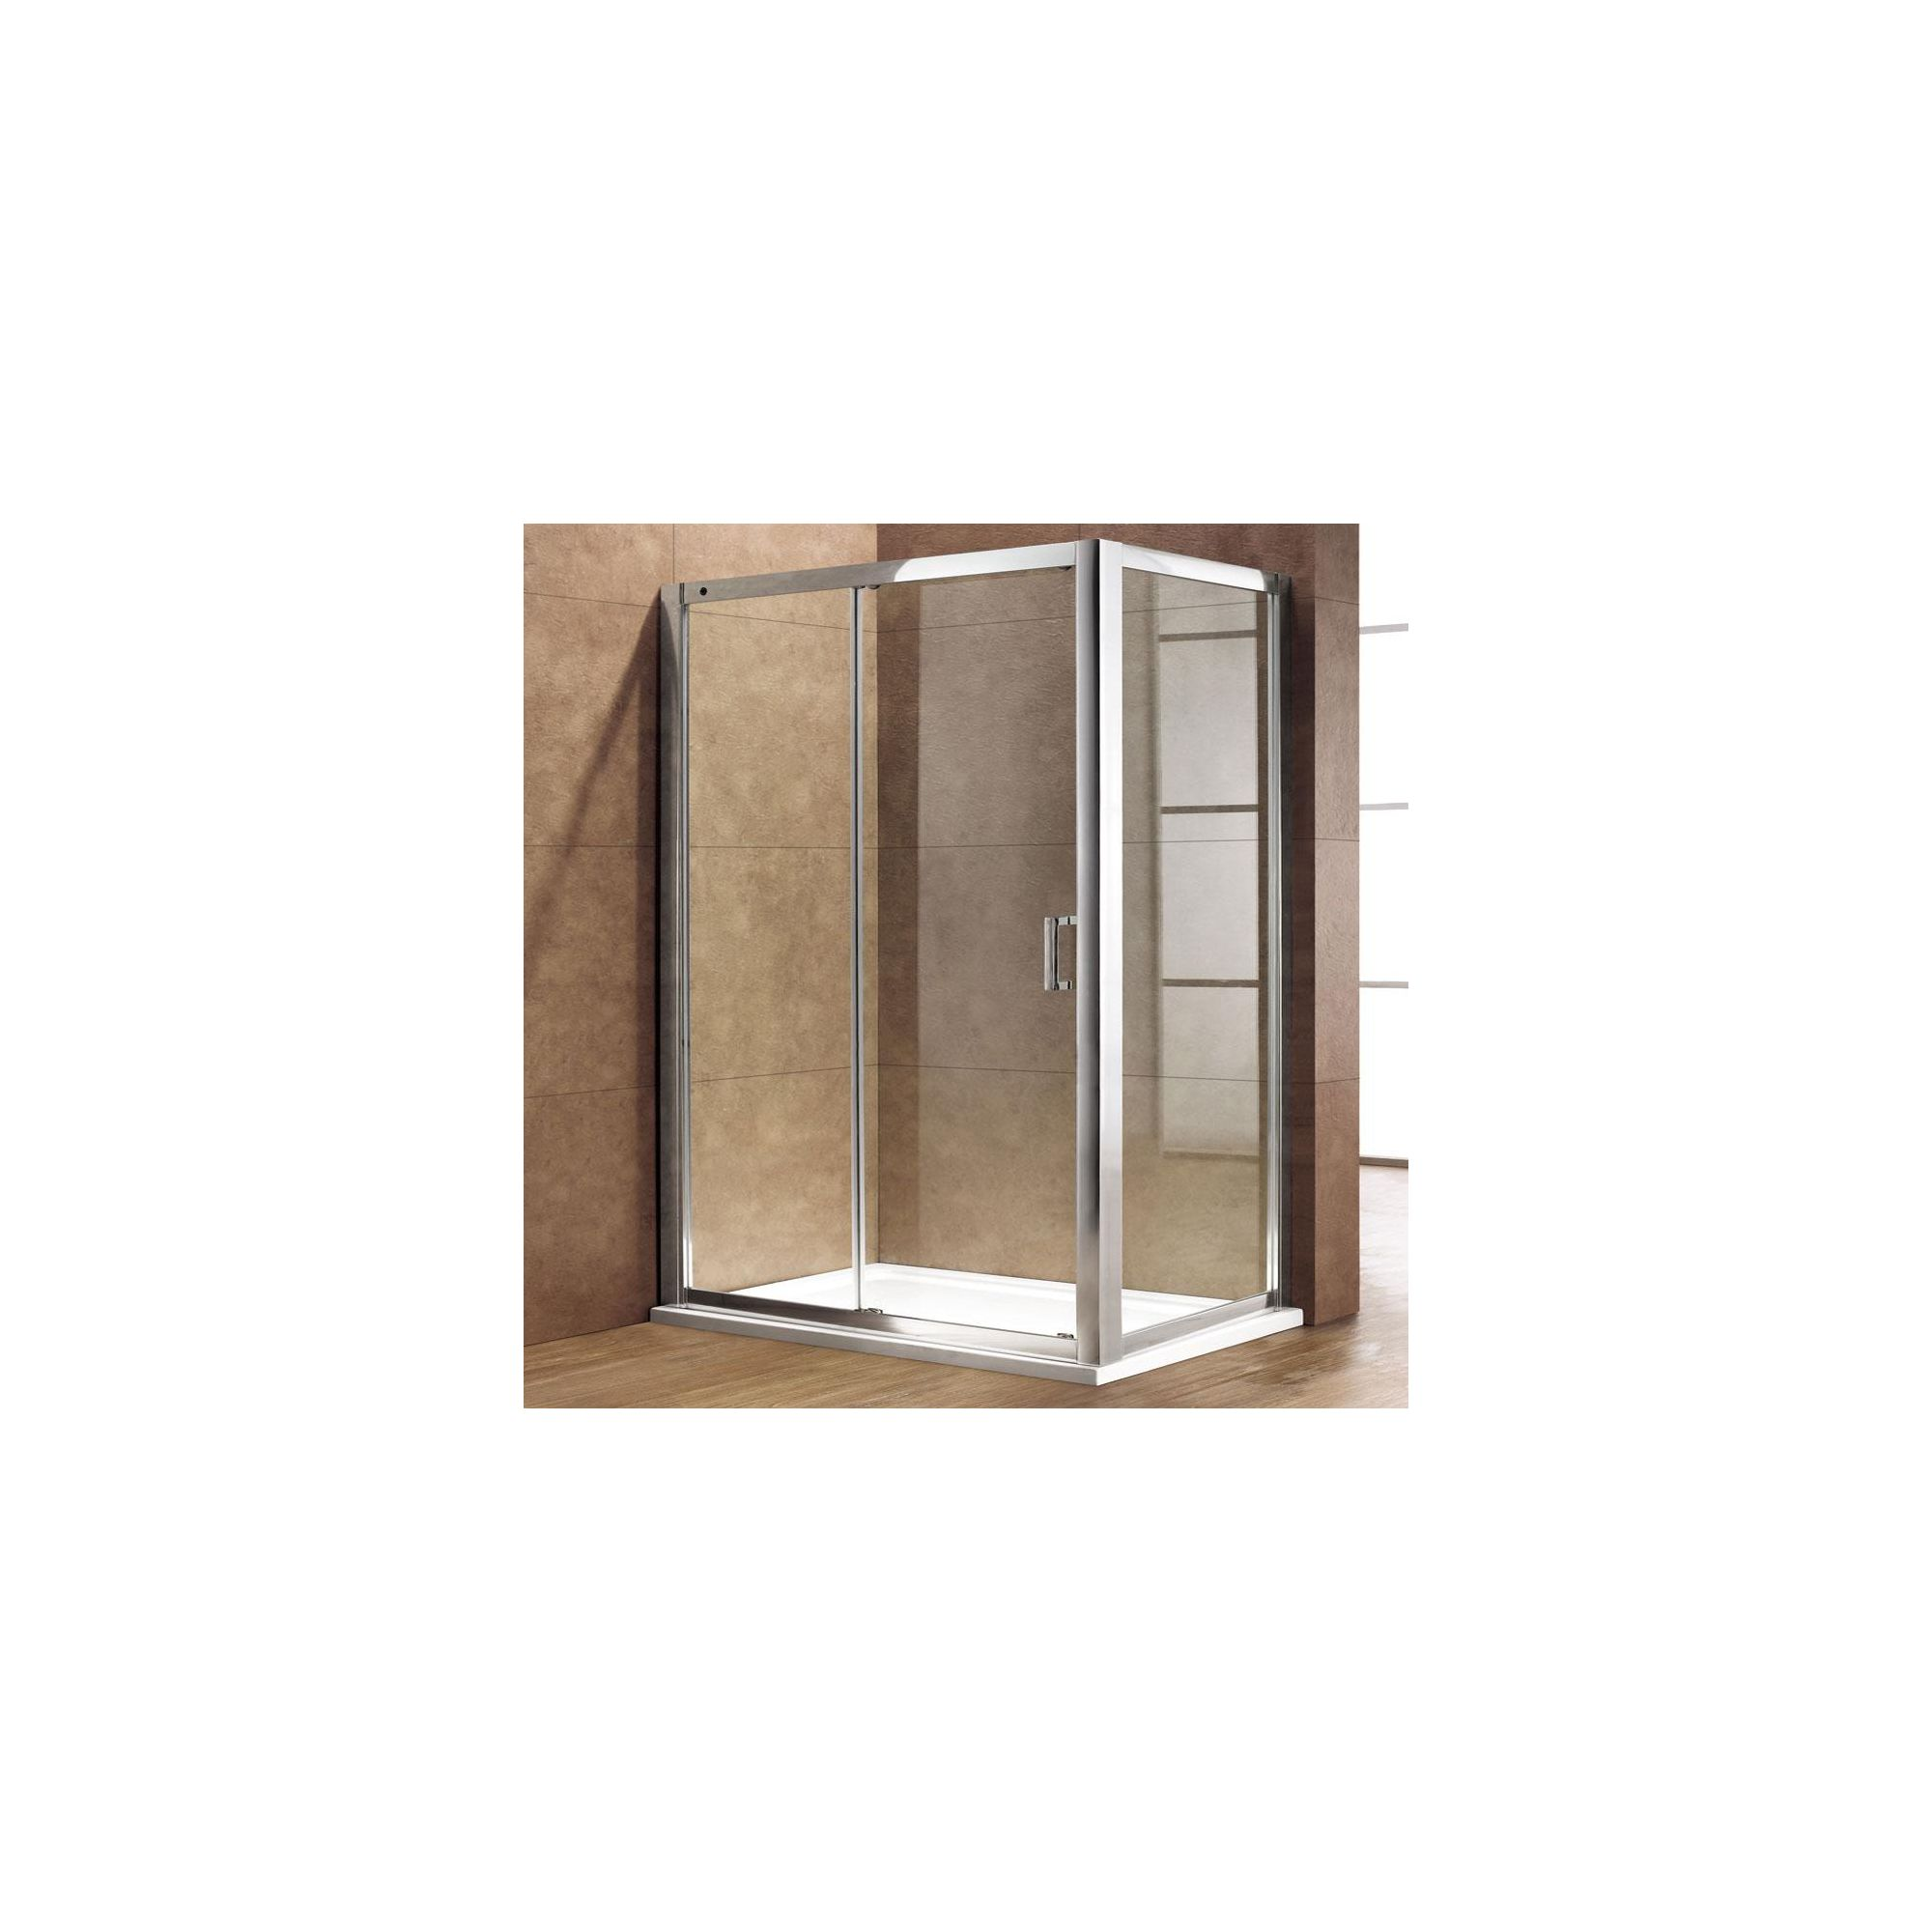 Duchy Premium Single Sliding Door Shower Enclosure, 1700mm x 760mm, 8mm Glass, Low Profile Tray at Tesco Direct